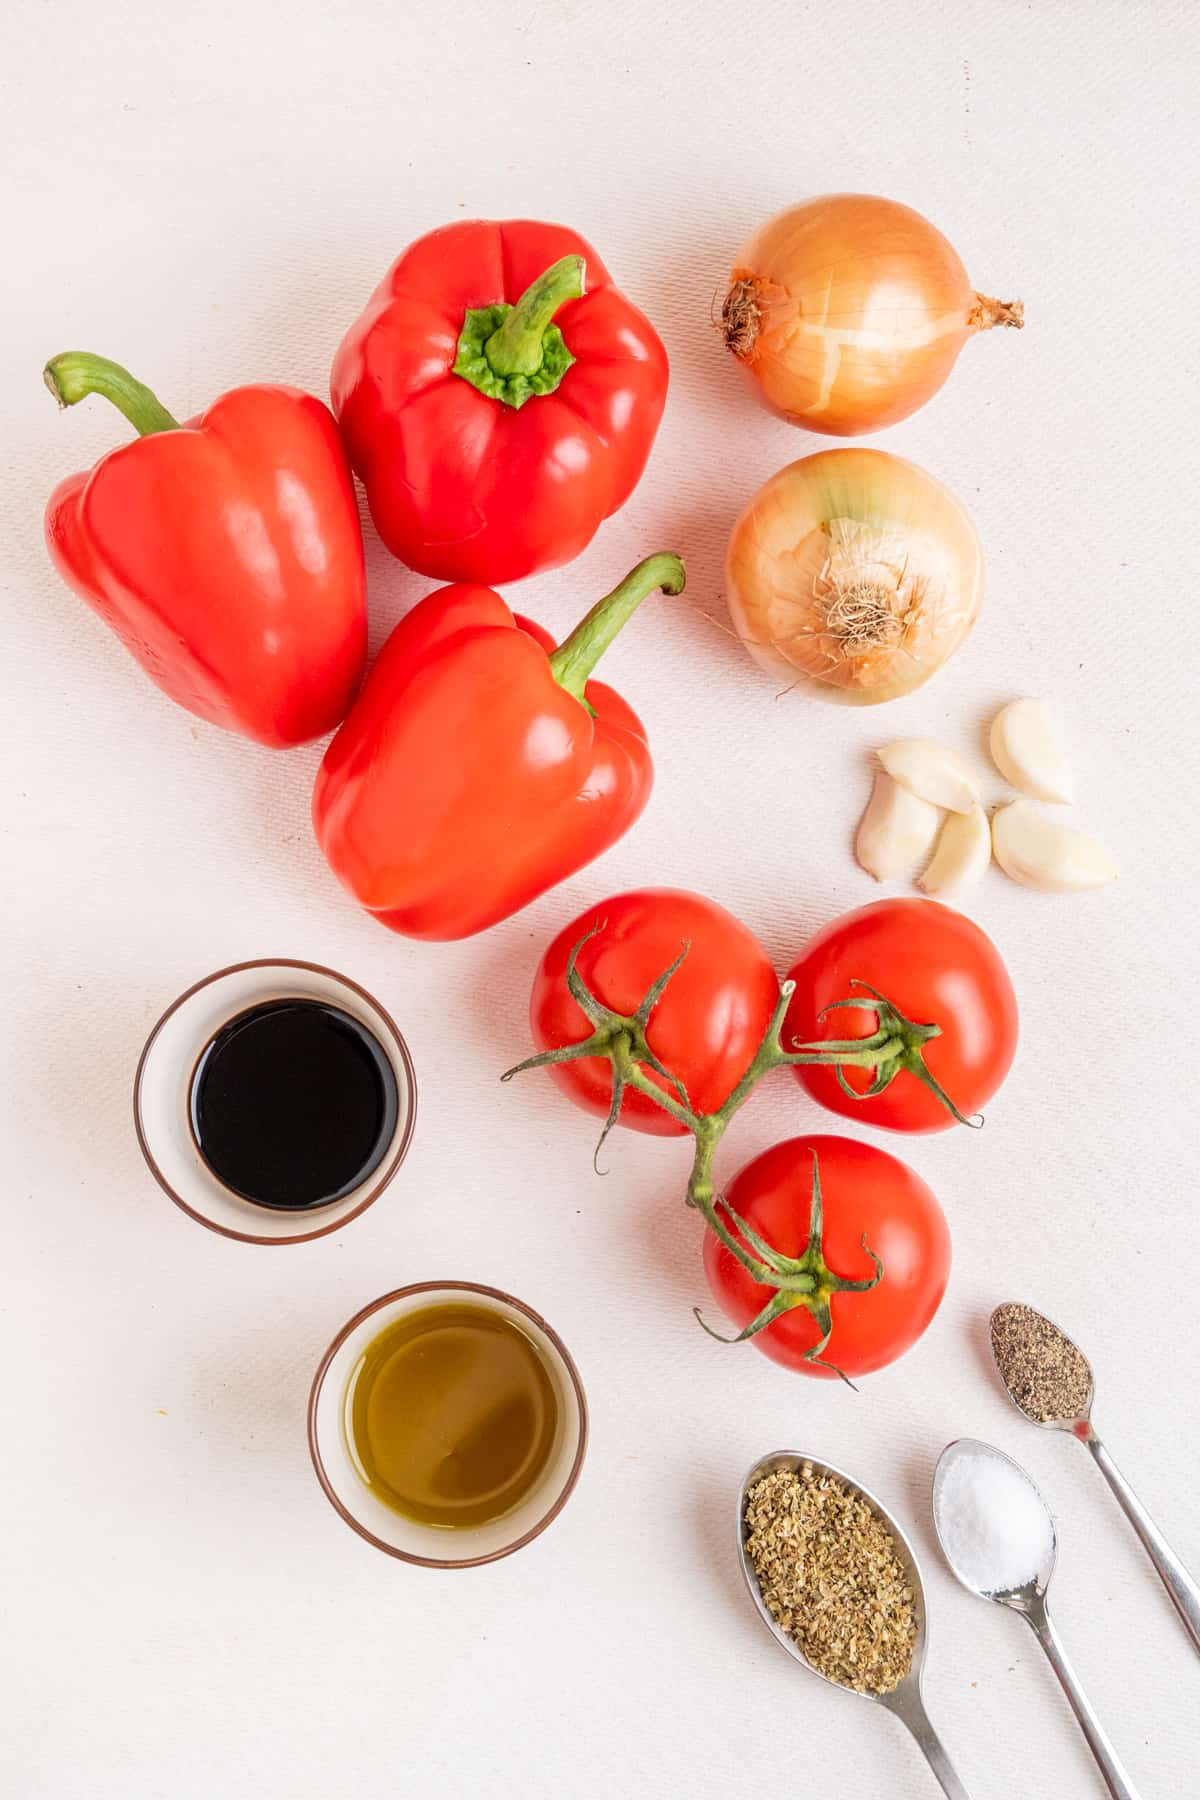 The ingredients for the red pepper and tomato sauce: Red sweet peppers, fresh tomatoes, onions, garlic, olive oil, balsamic vinegar, dried oregano, salt and ground black pepper.